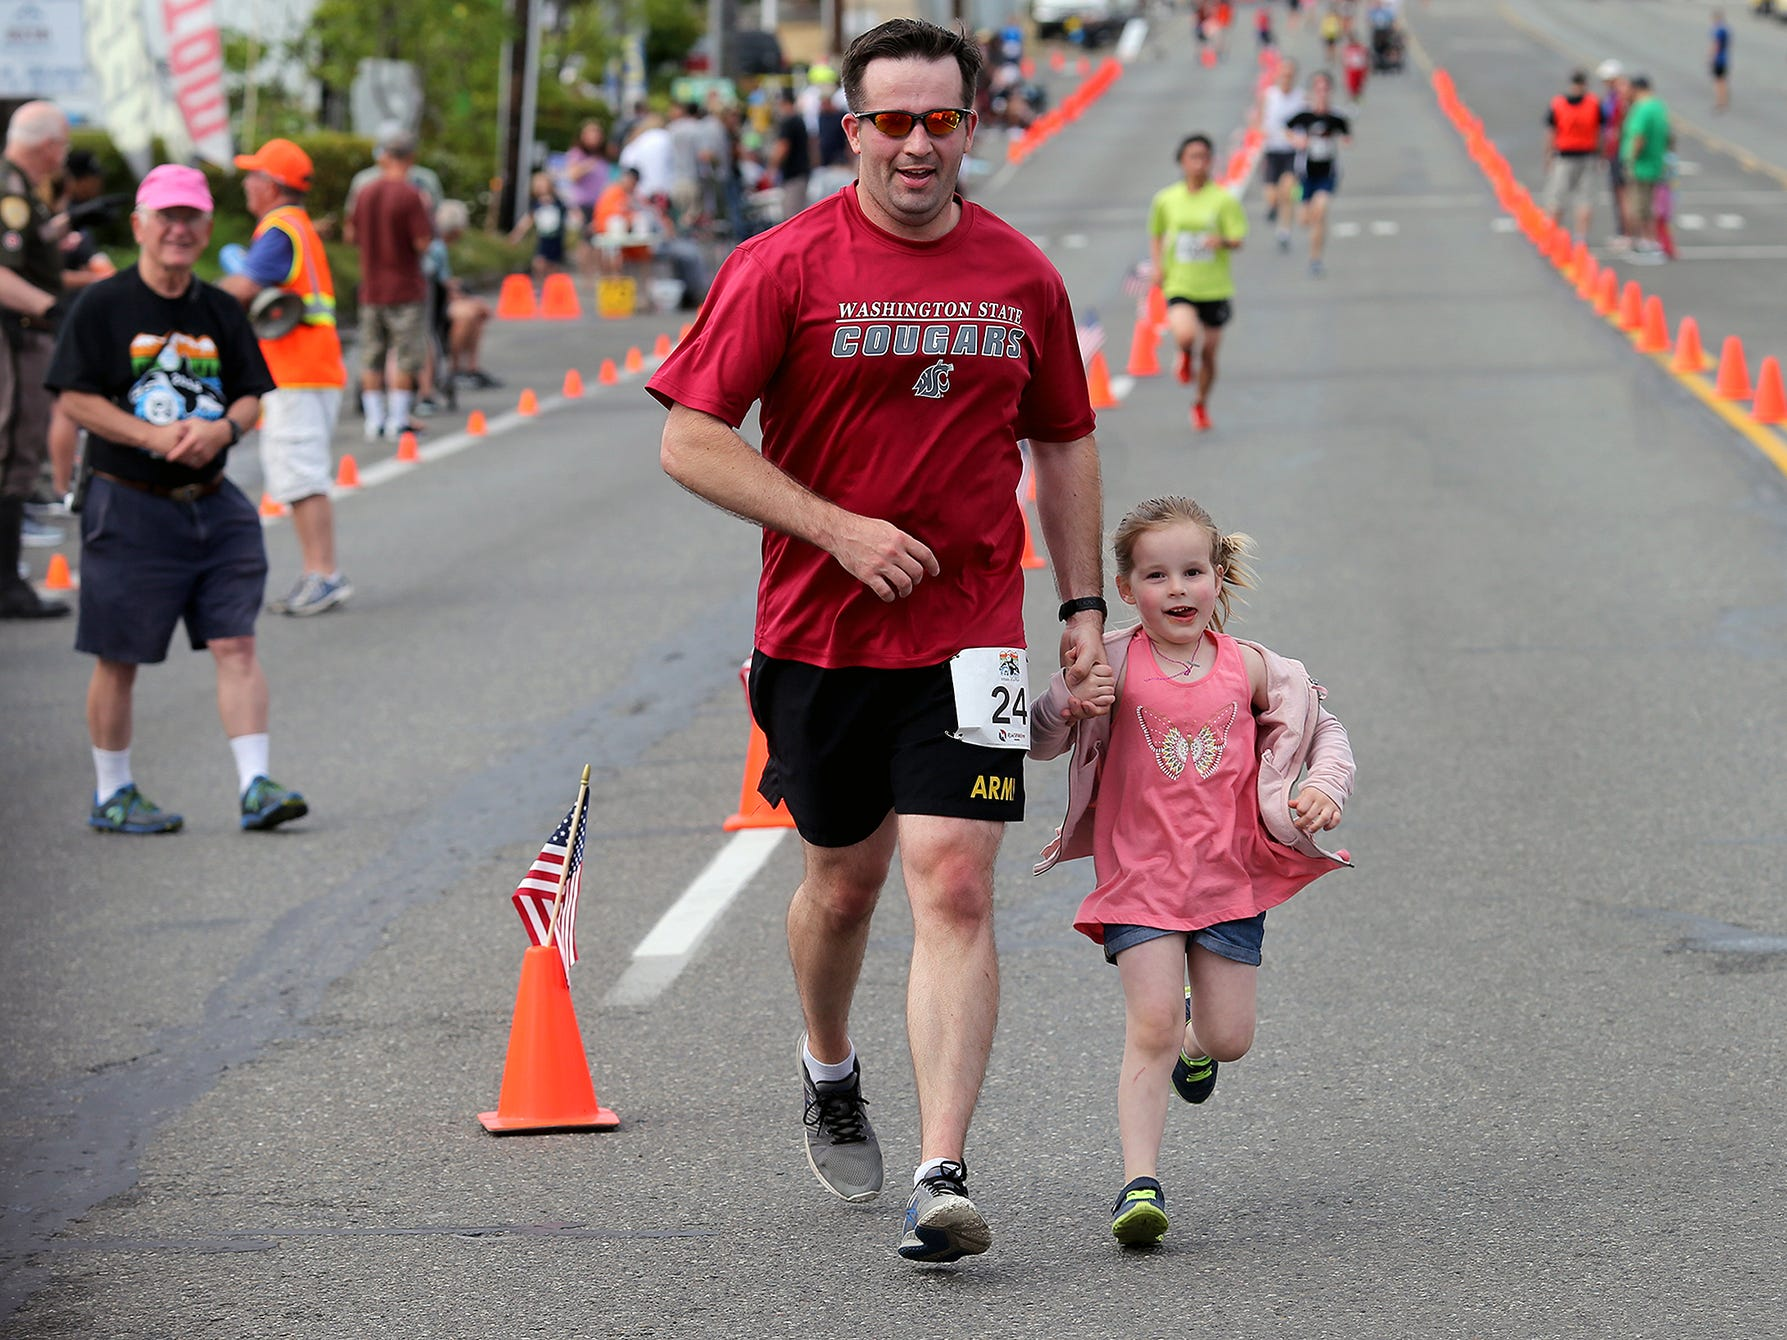 Adam Cates, of Bremerton, and his daughter Stella, 4, run during the 1 mile run walk at the Whale of a Run to the finish line on Silverdale Way in Silverdale, WA on Saturday, July 28, 2018.